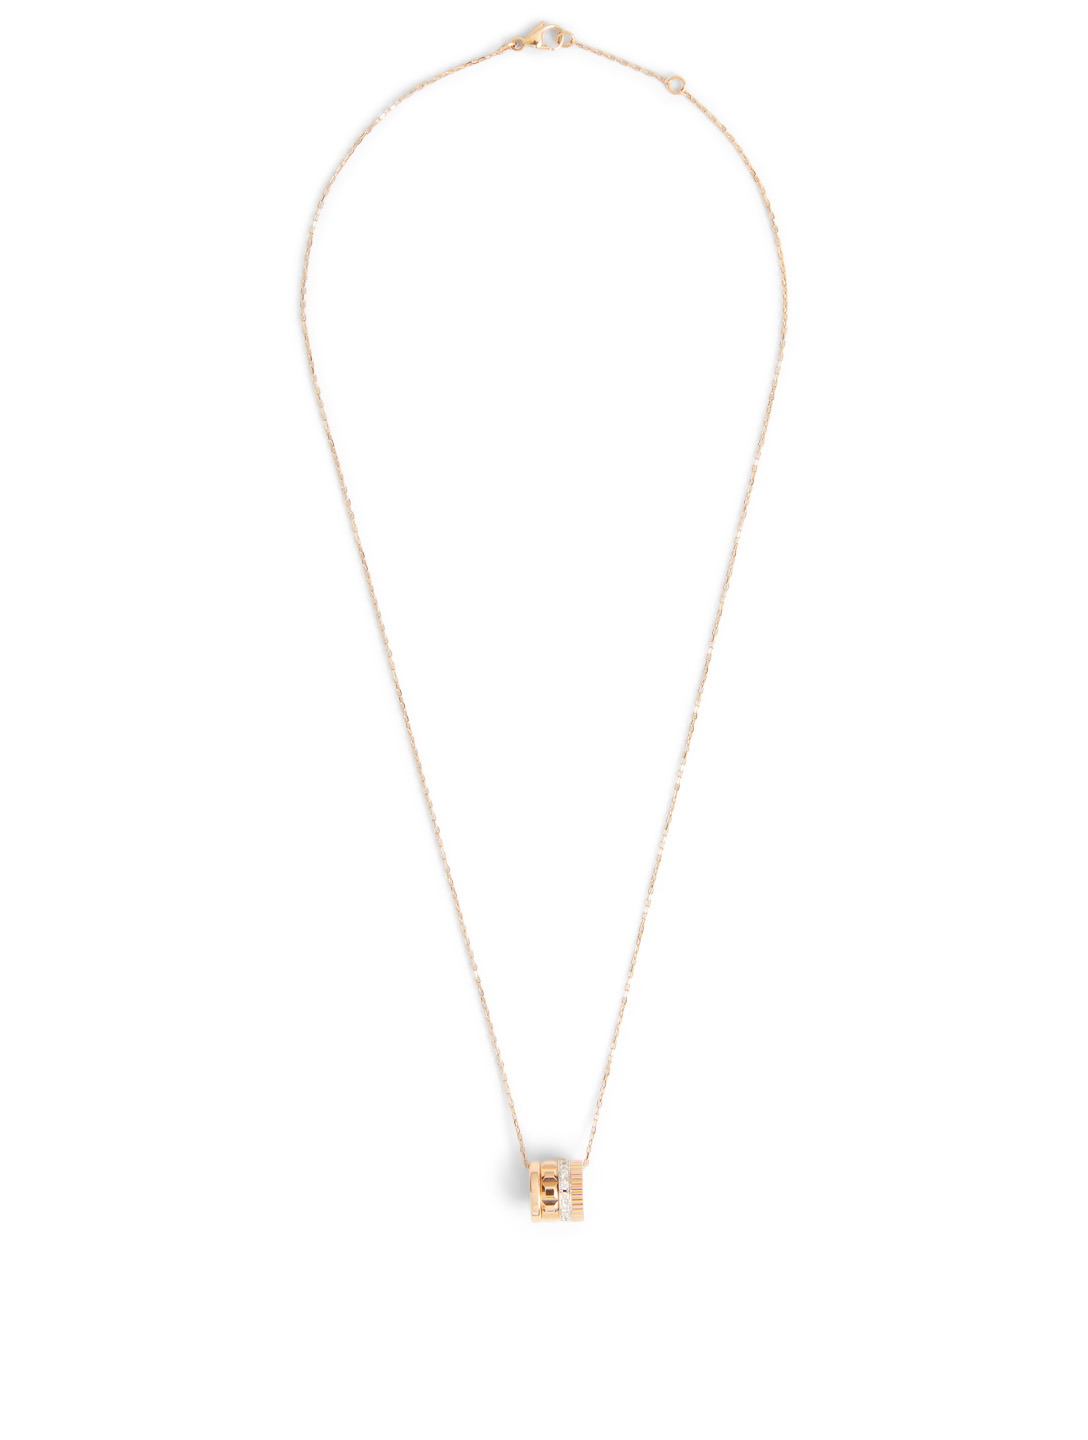 BOUCHERON Radiant Edition Quatre Rose Gold Pendant Necklace With Diamonds Women's Metallic